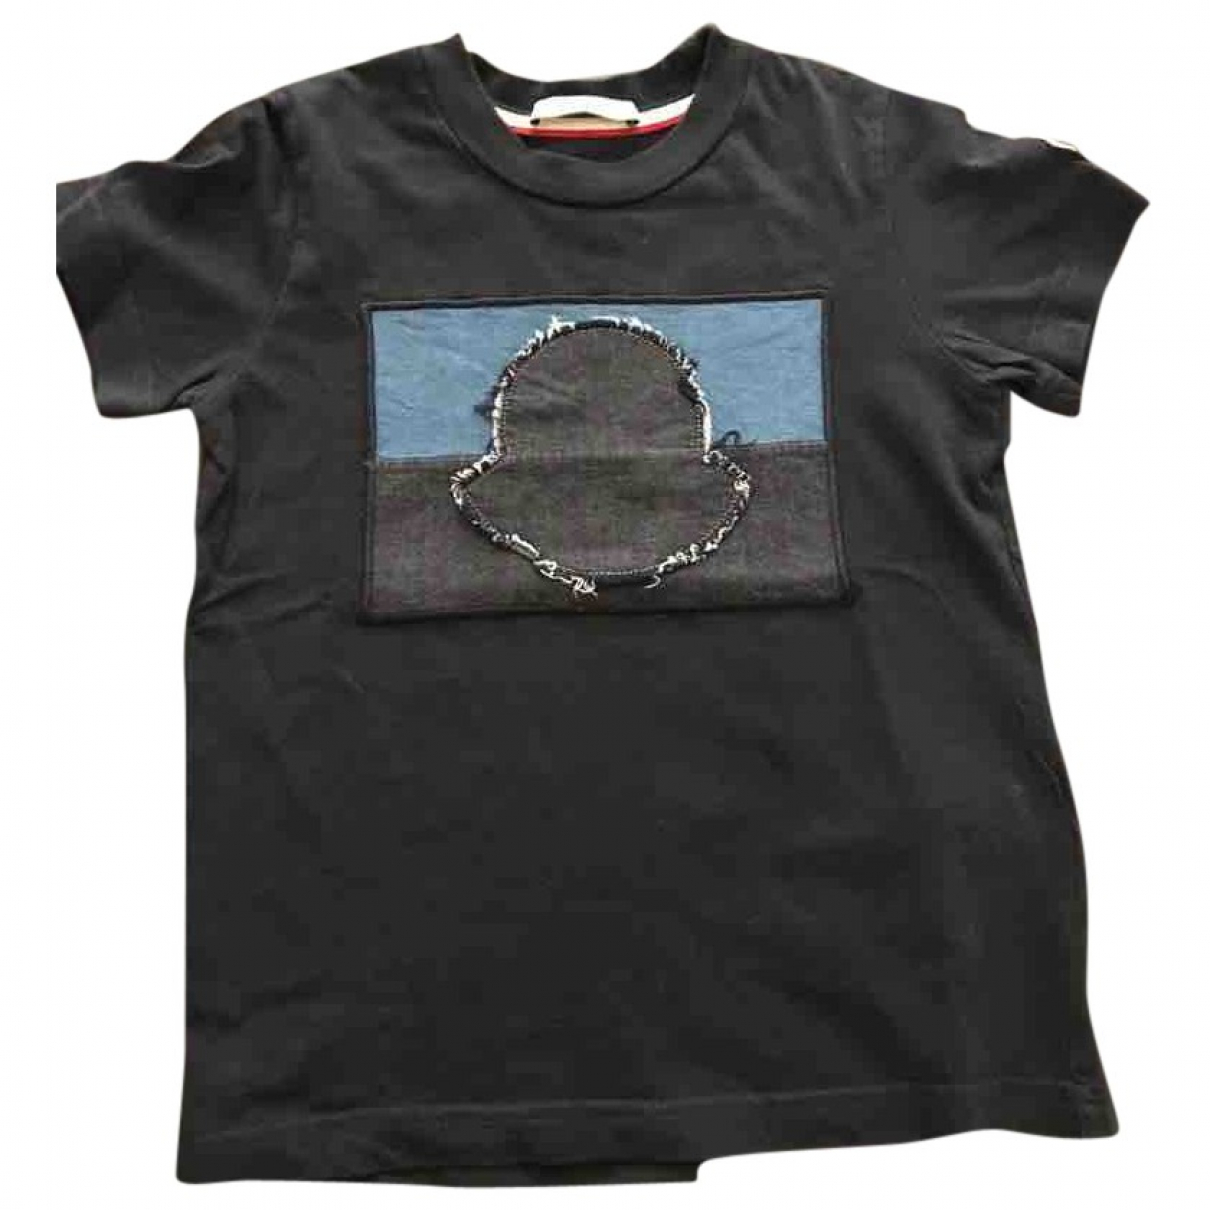 Moncler \N Black Cotton  top for Kids 4 years - up to 102cm FR